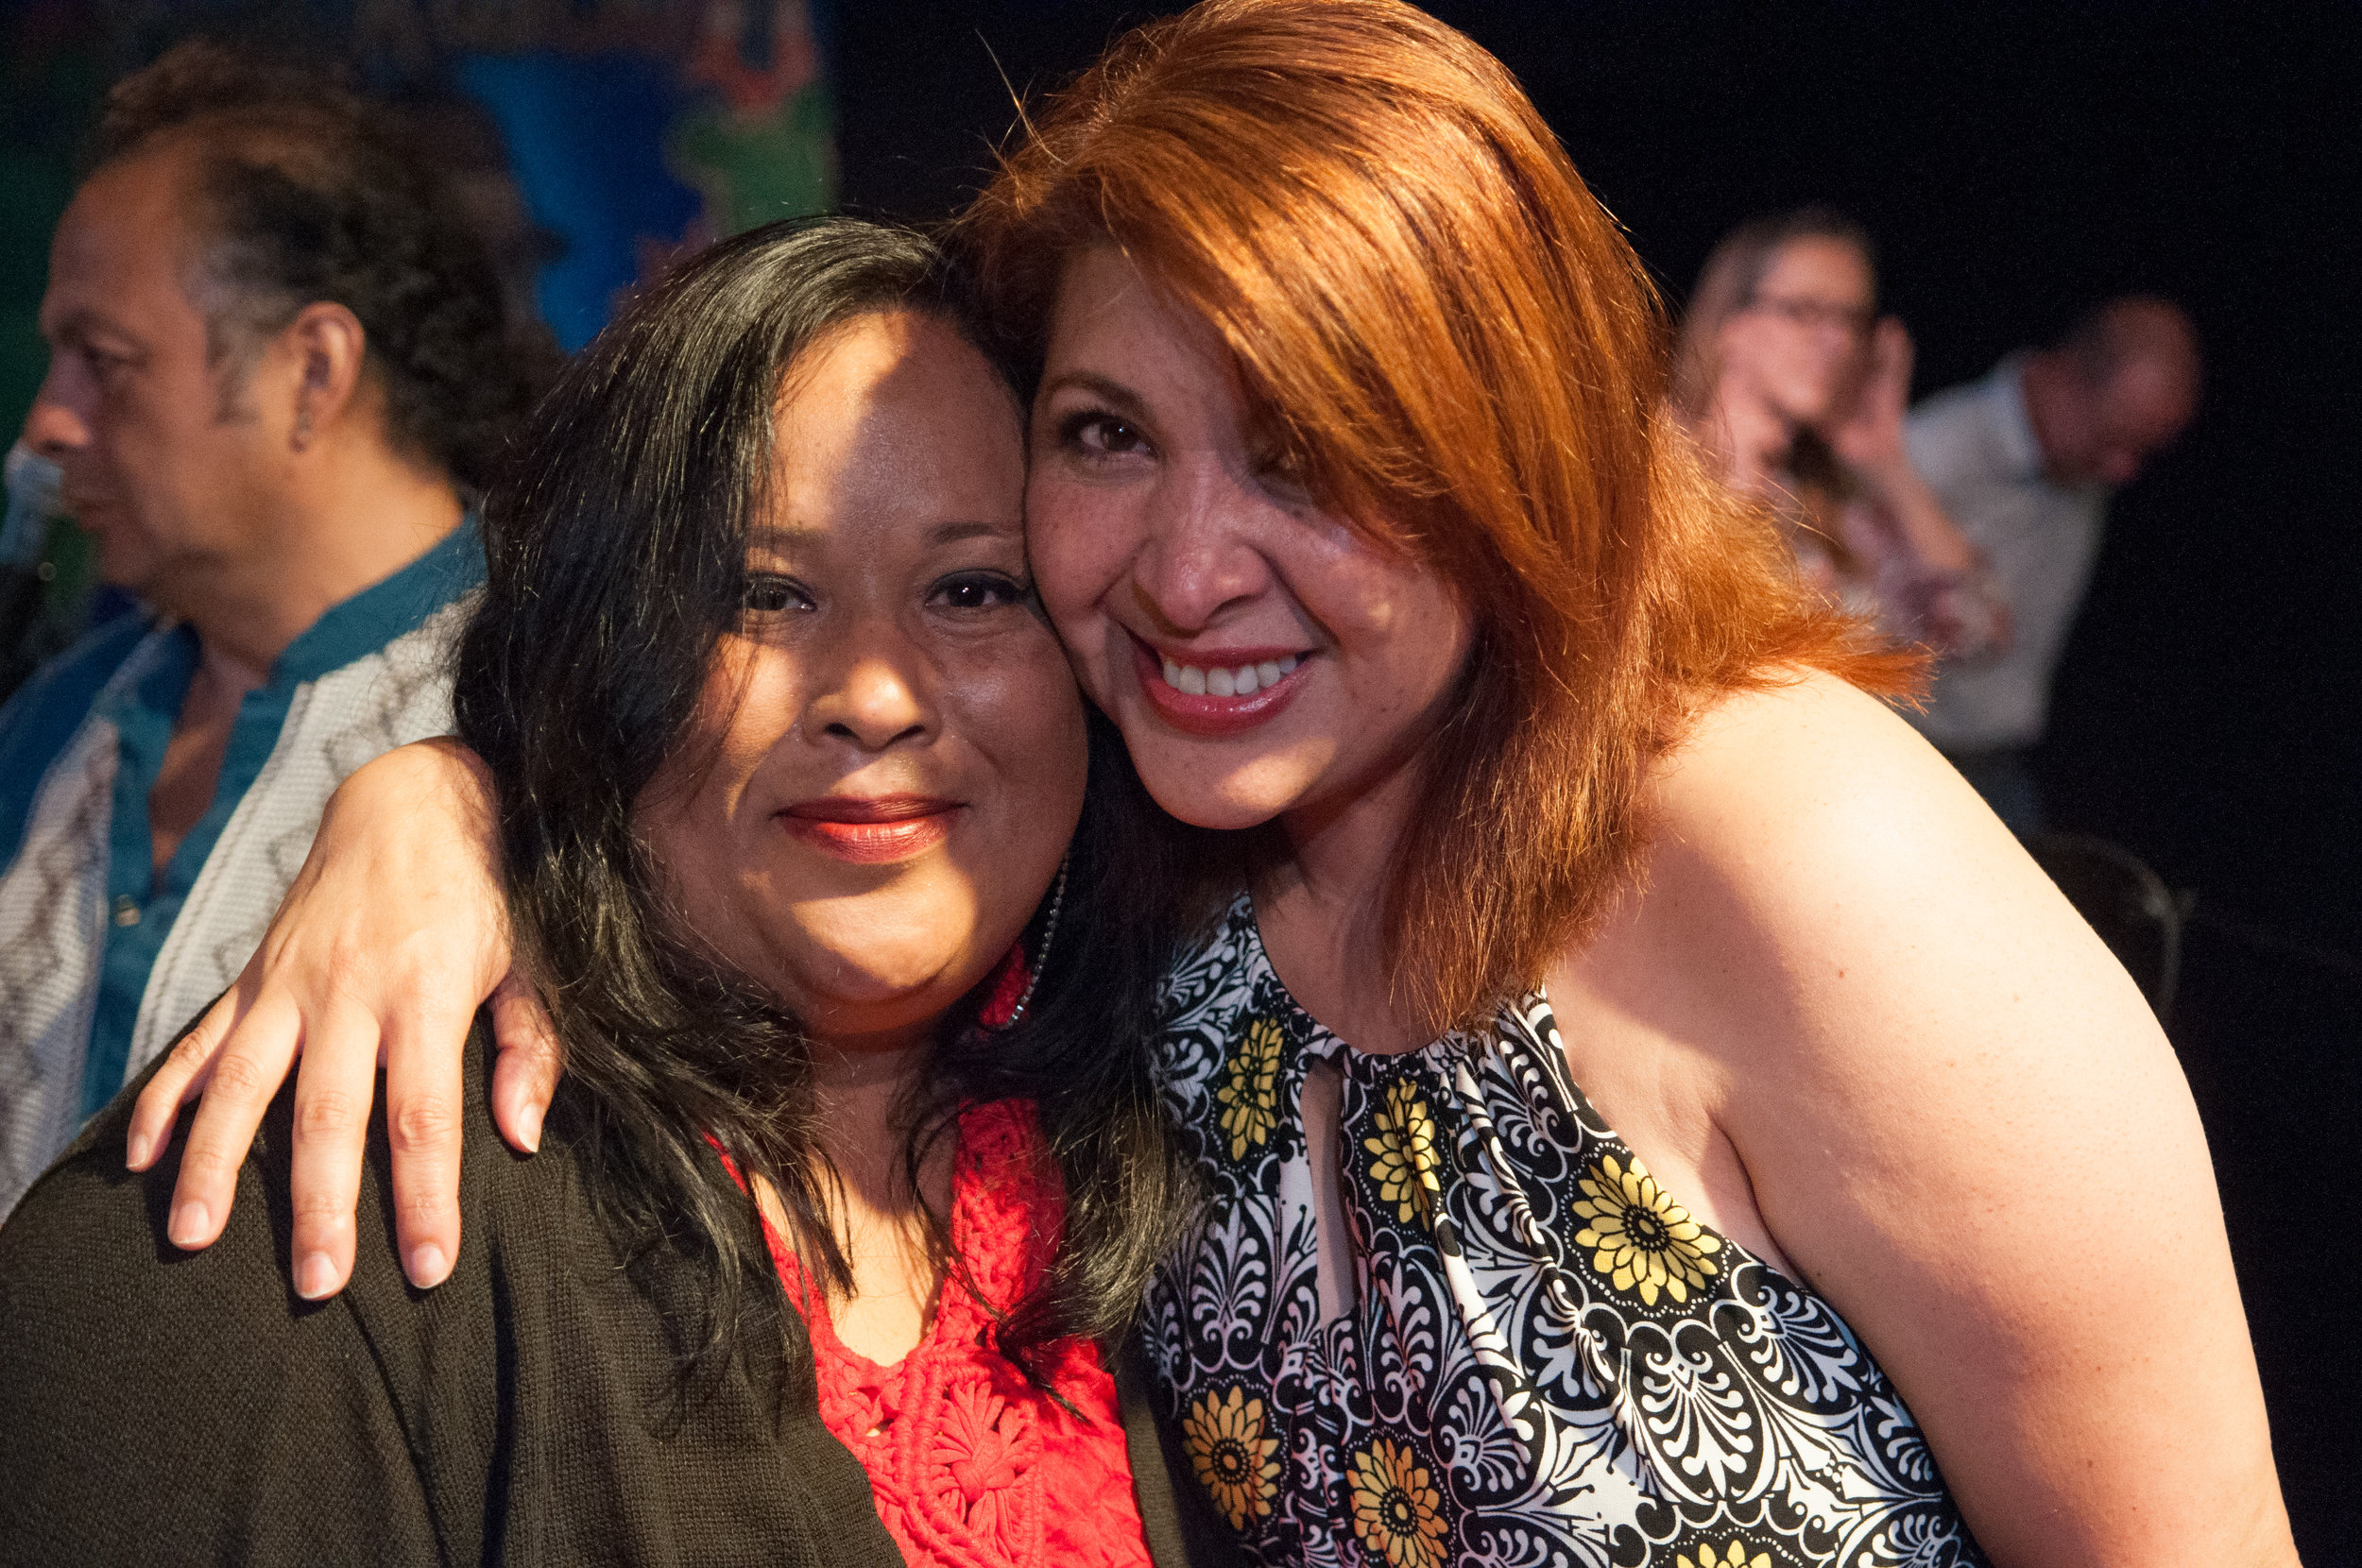 Anabertha and Nurys Herrera, the actress who performed Anabertha's story.